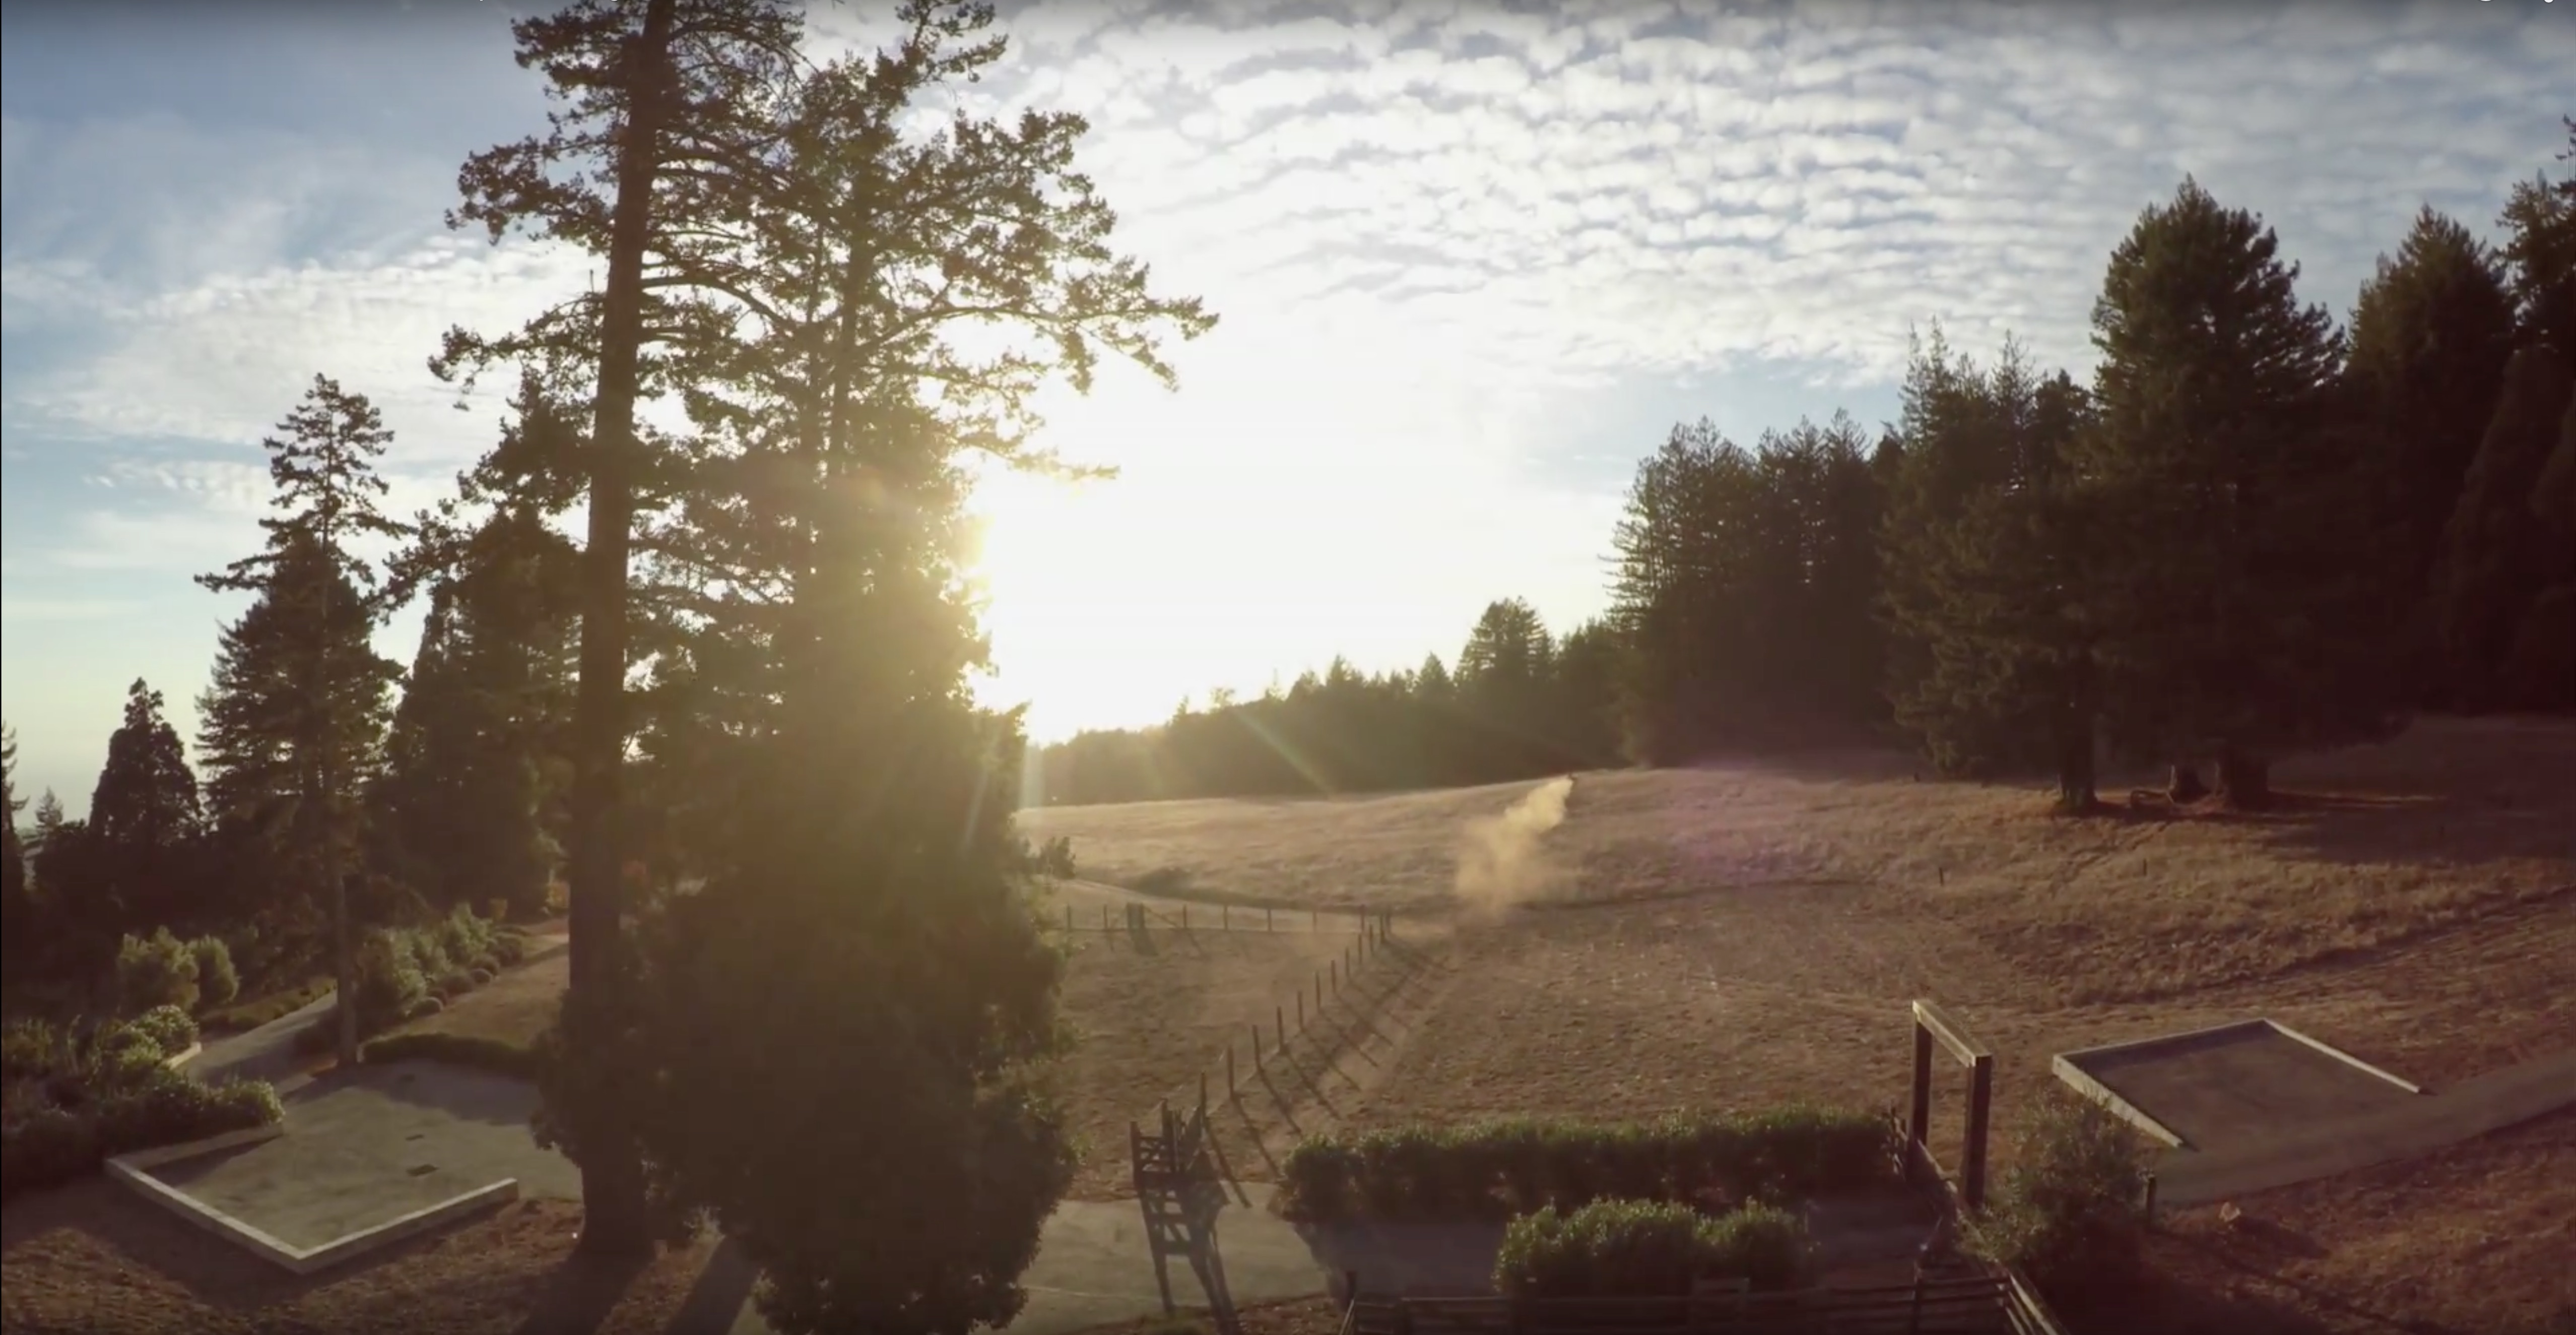 GoProQuadcopter2